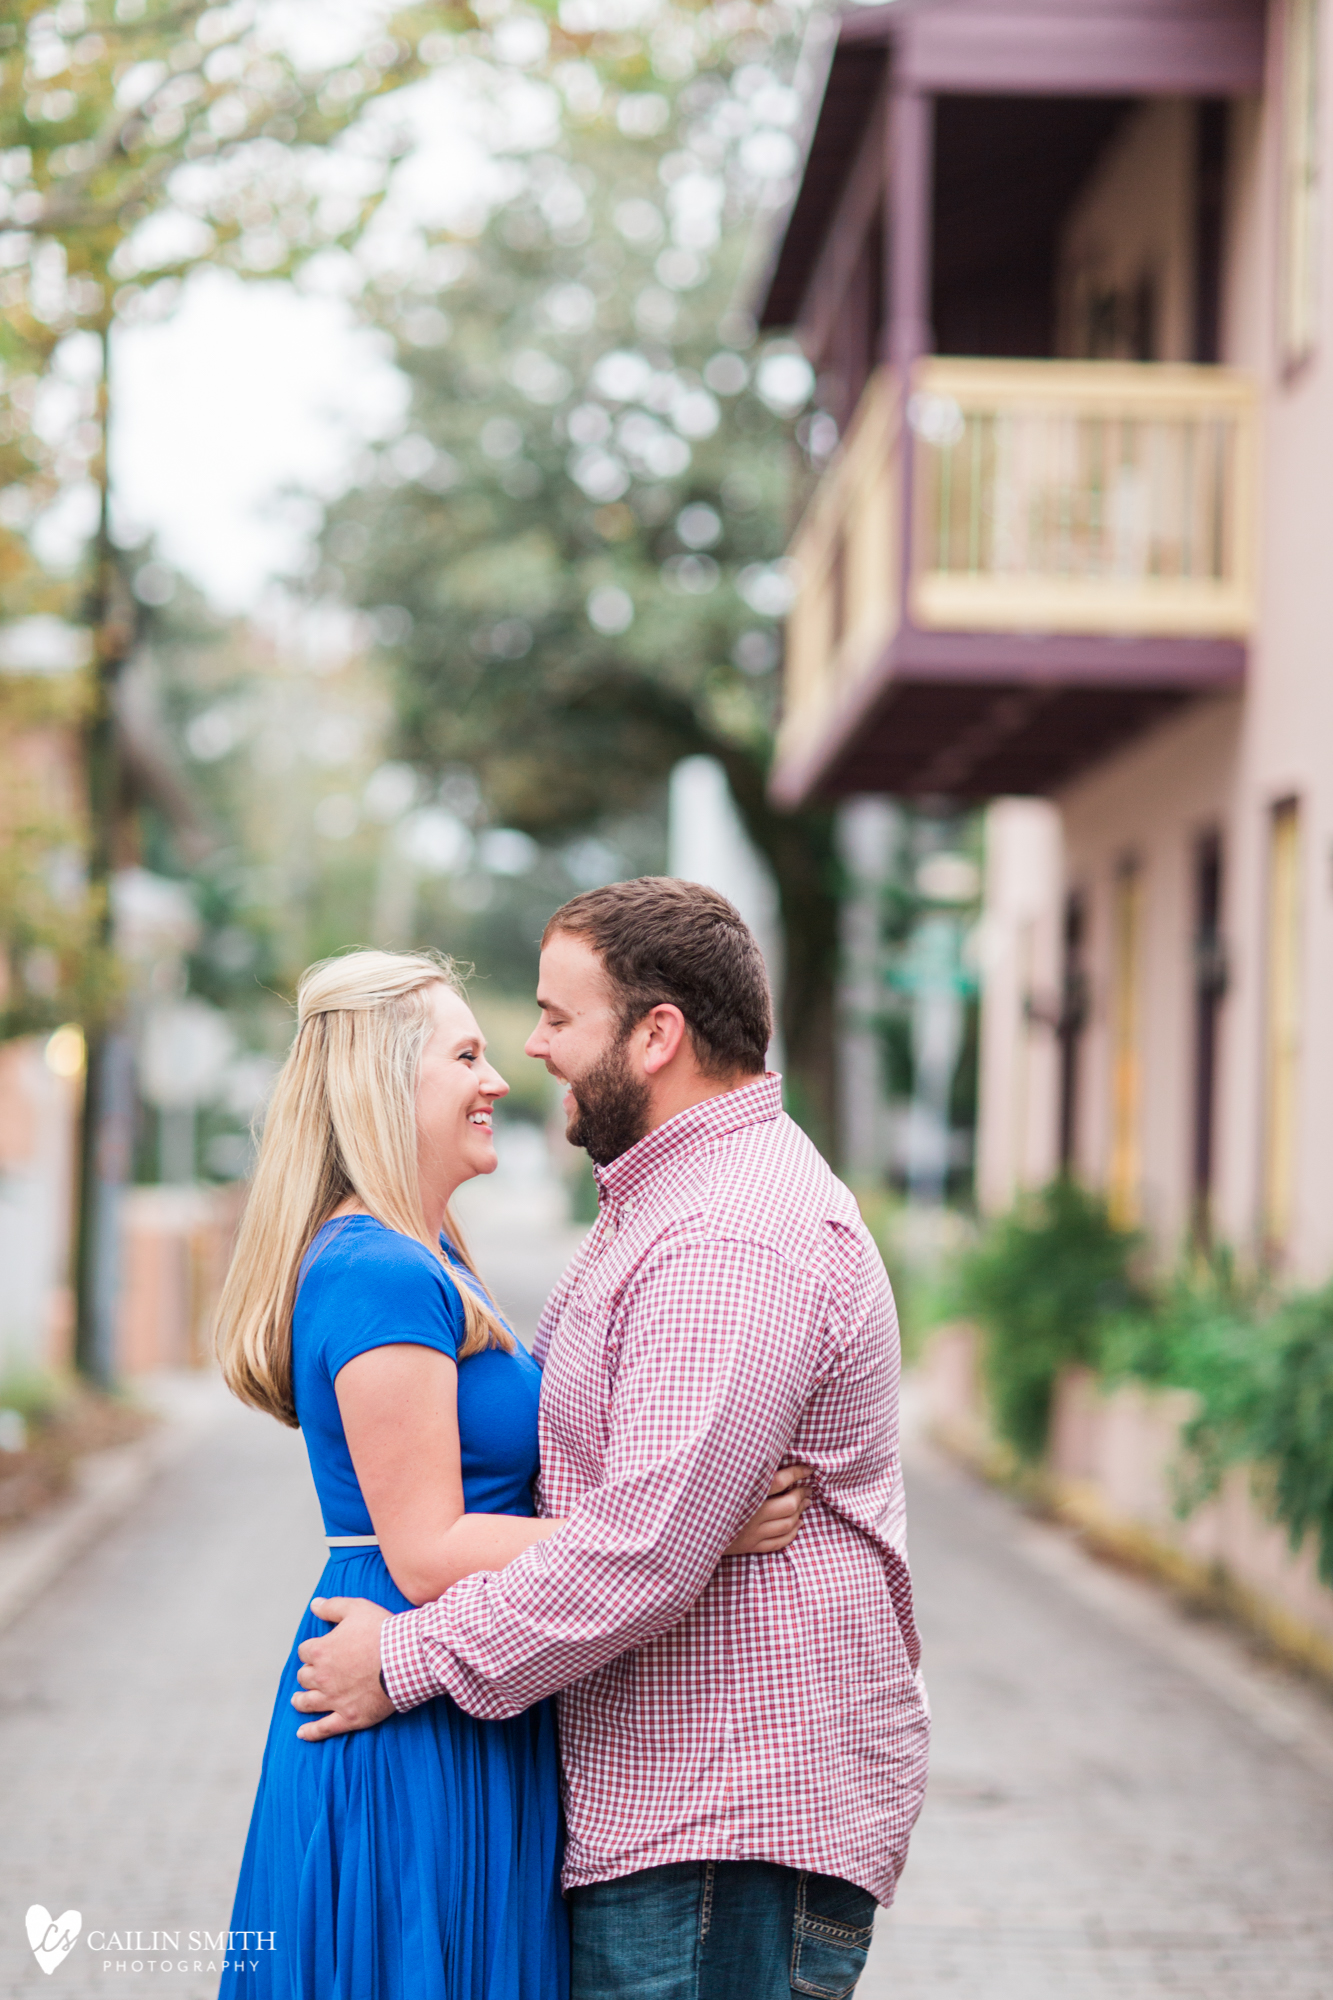 Shari_Brent_St_Augustine_Engagement_Photography_010.jpg